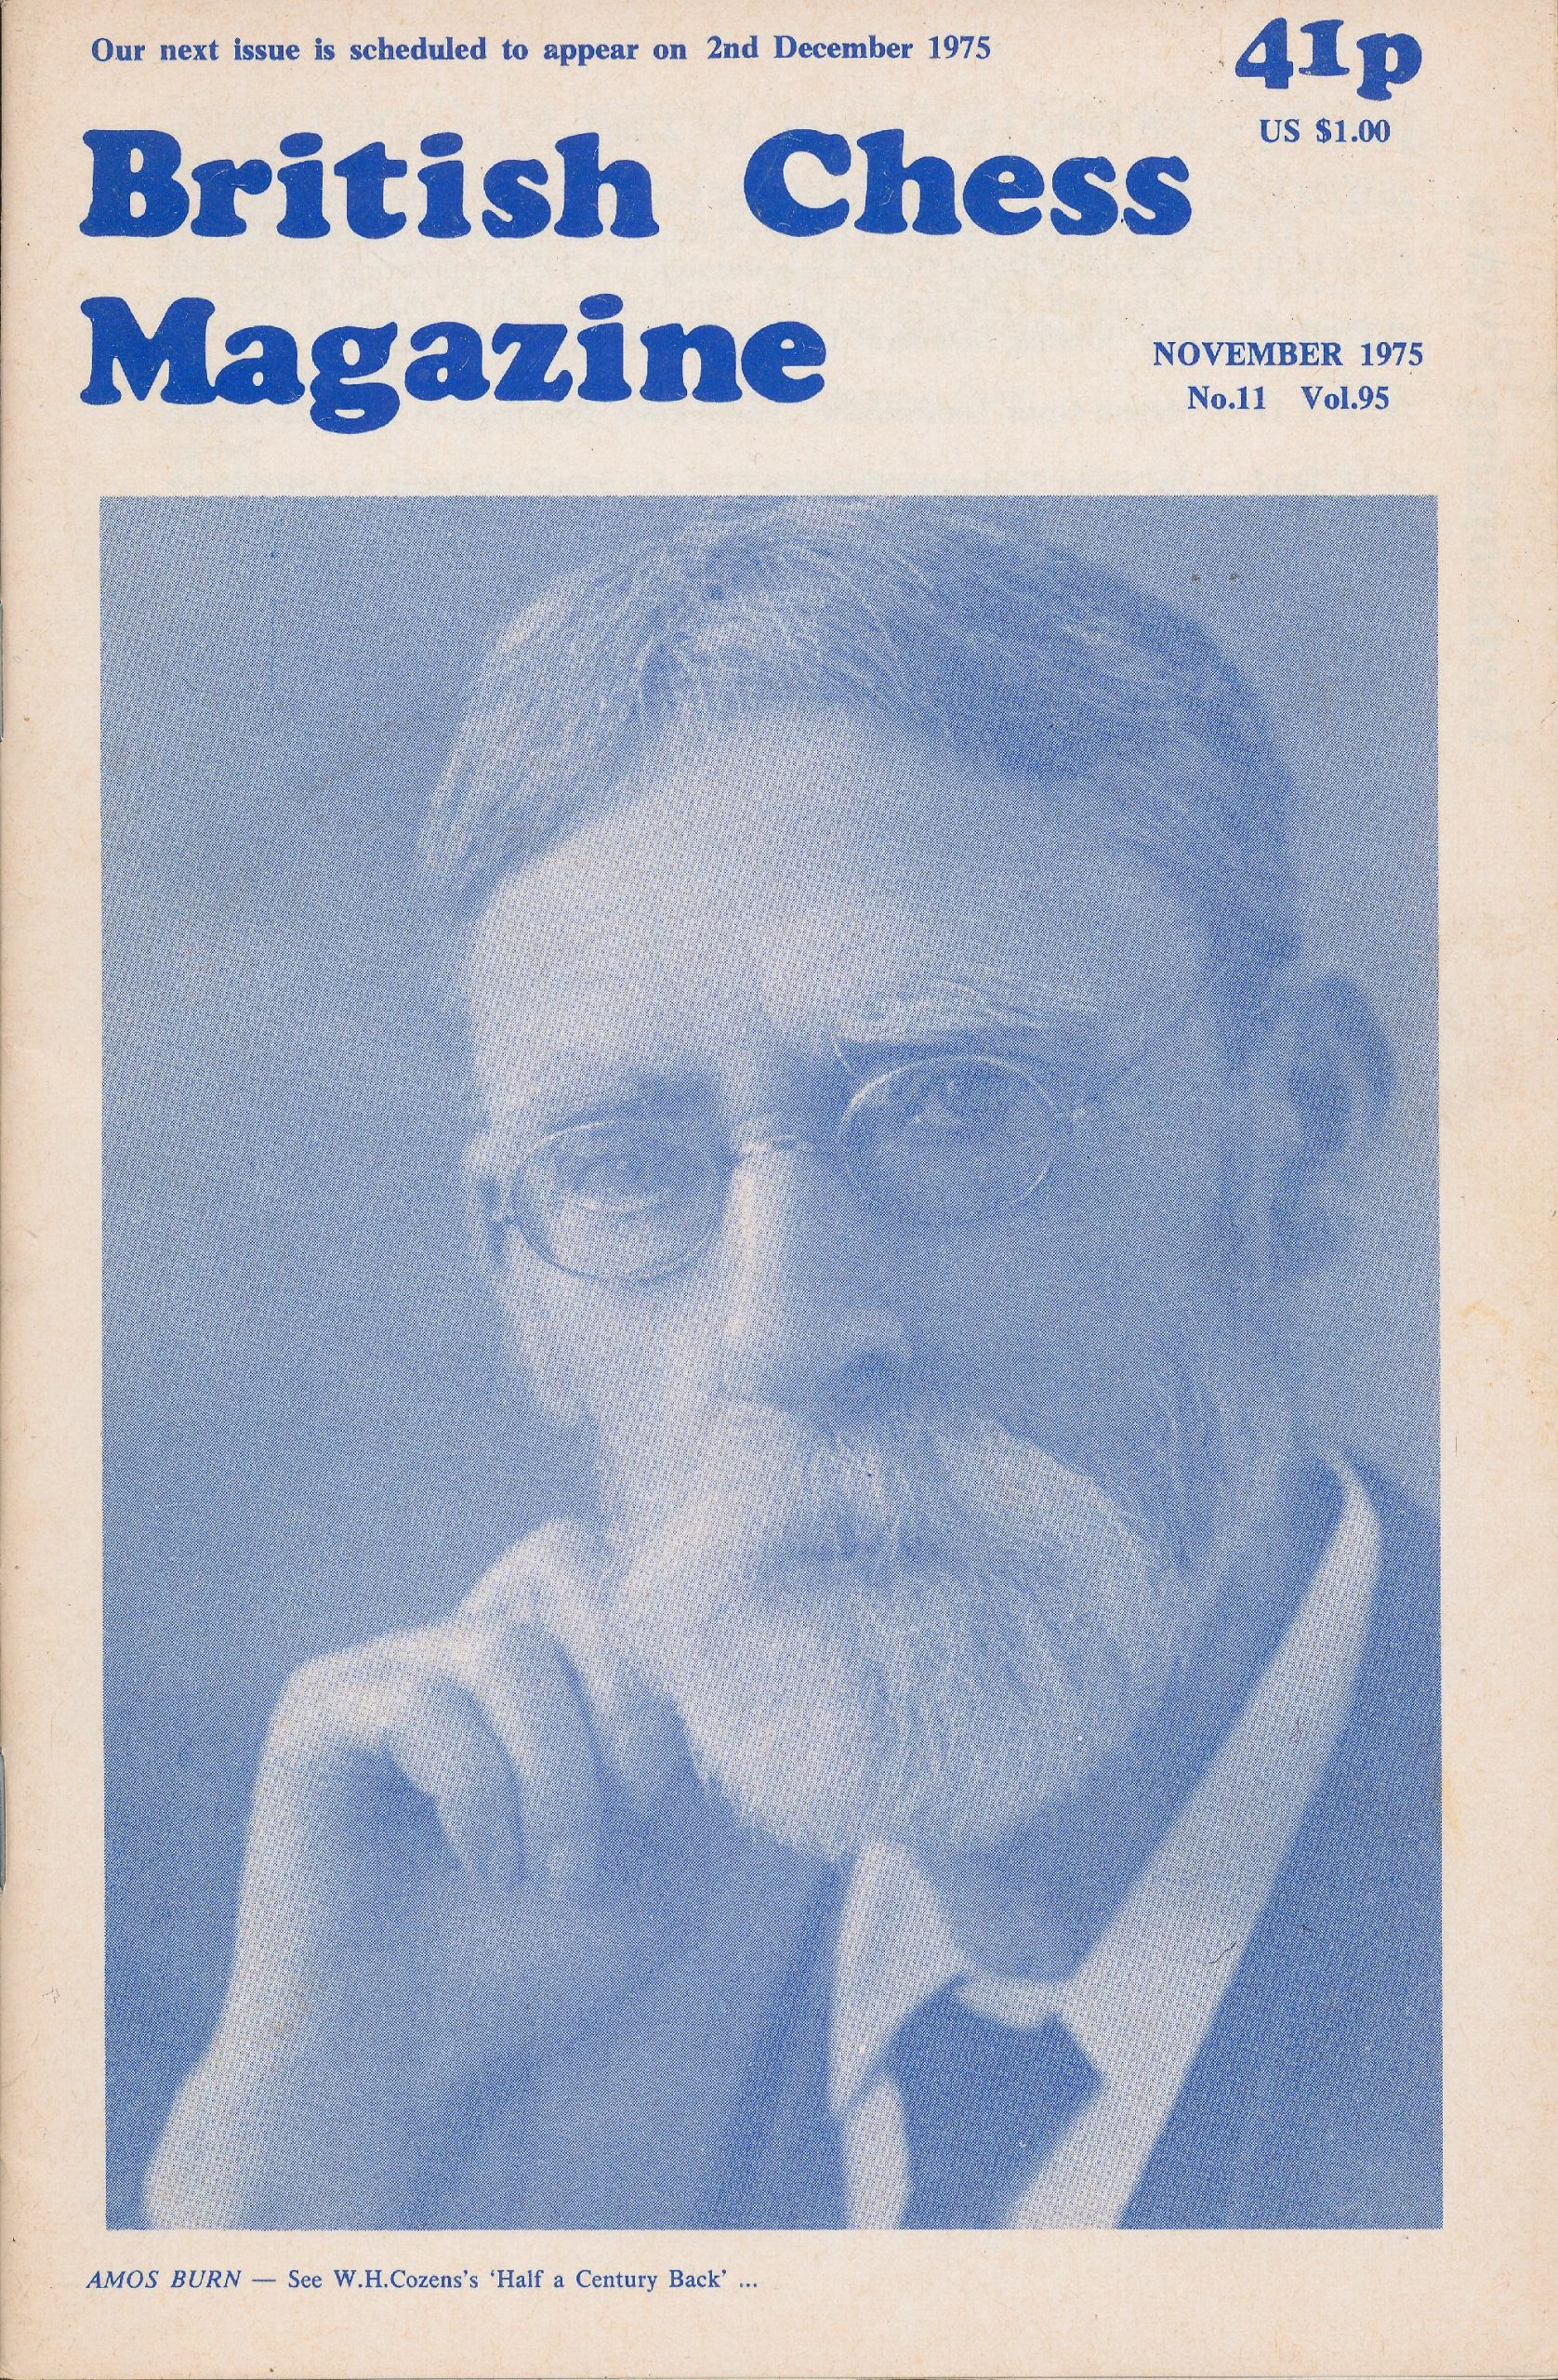 Amos Burn - See W.H.Cozen's 'Half a Century Back'...from the front cover of the November 1975 issue of British Chess Magazine